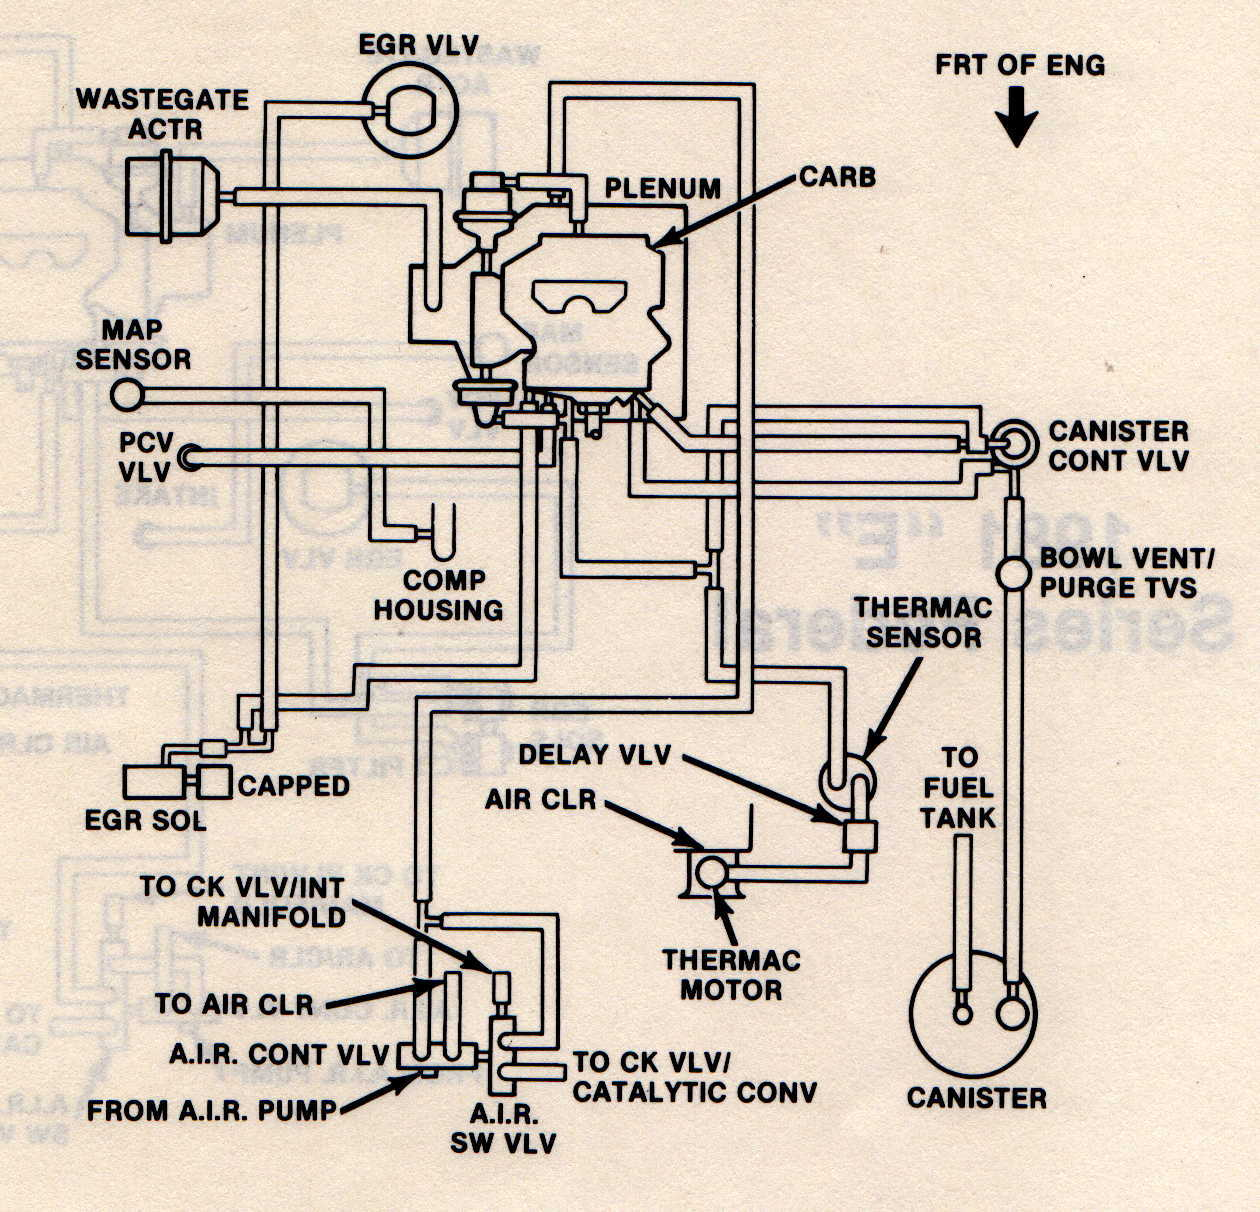 vac81a before black turbo notes 86 Monte Carlo Wiring Diagram at readyjetset.co